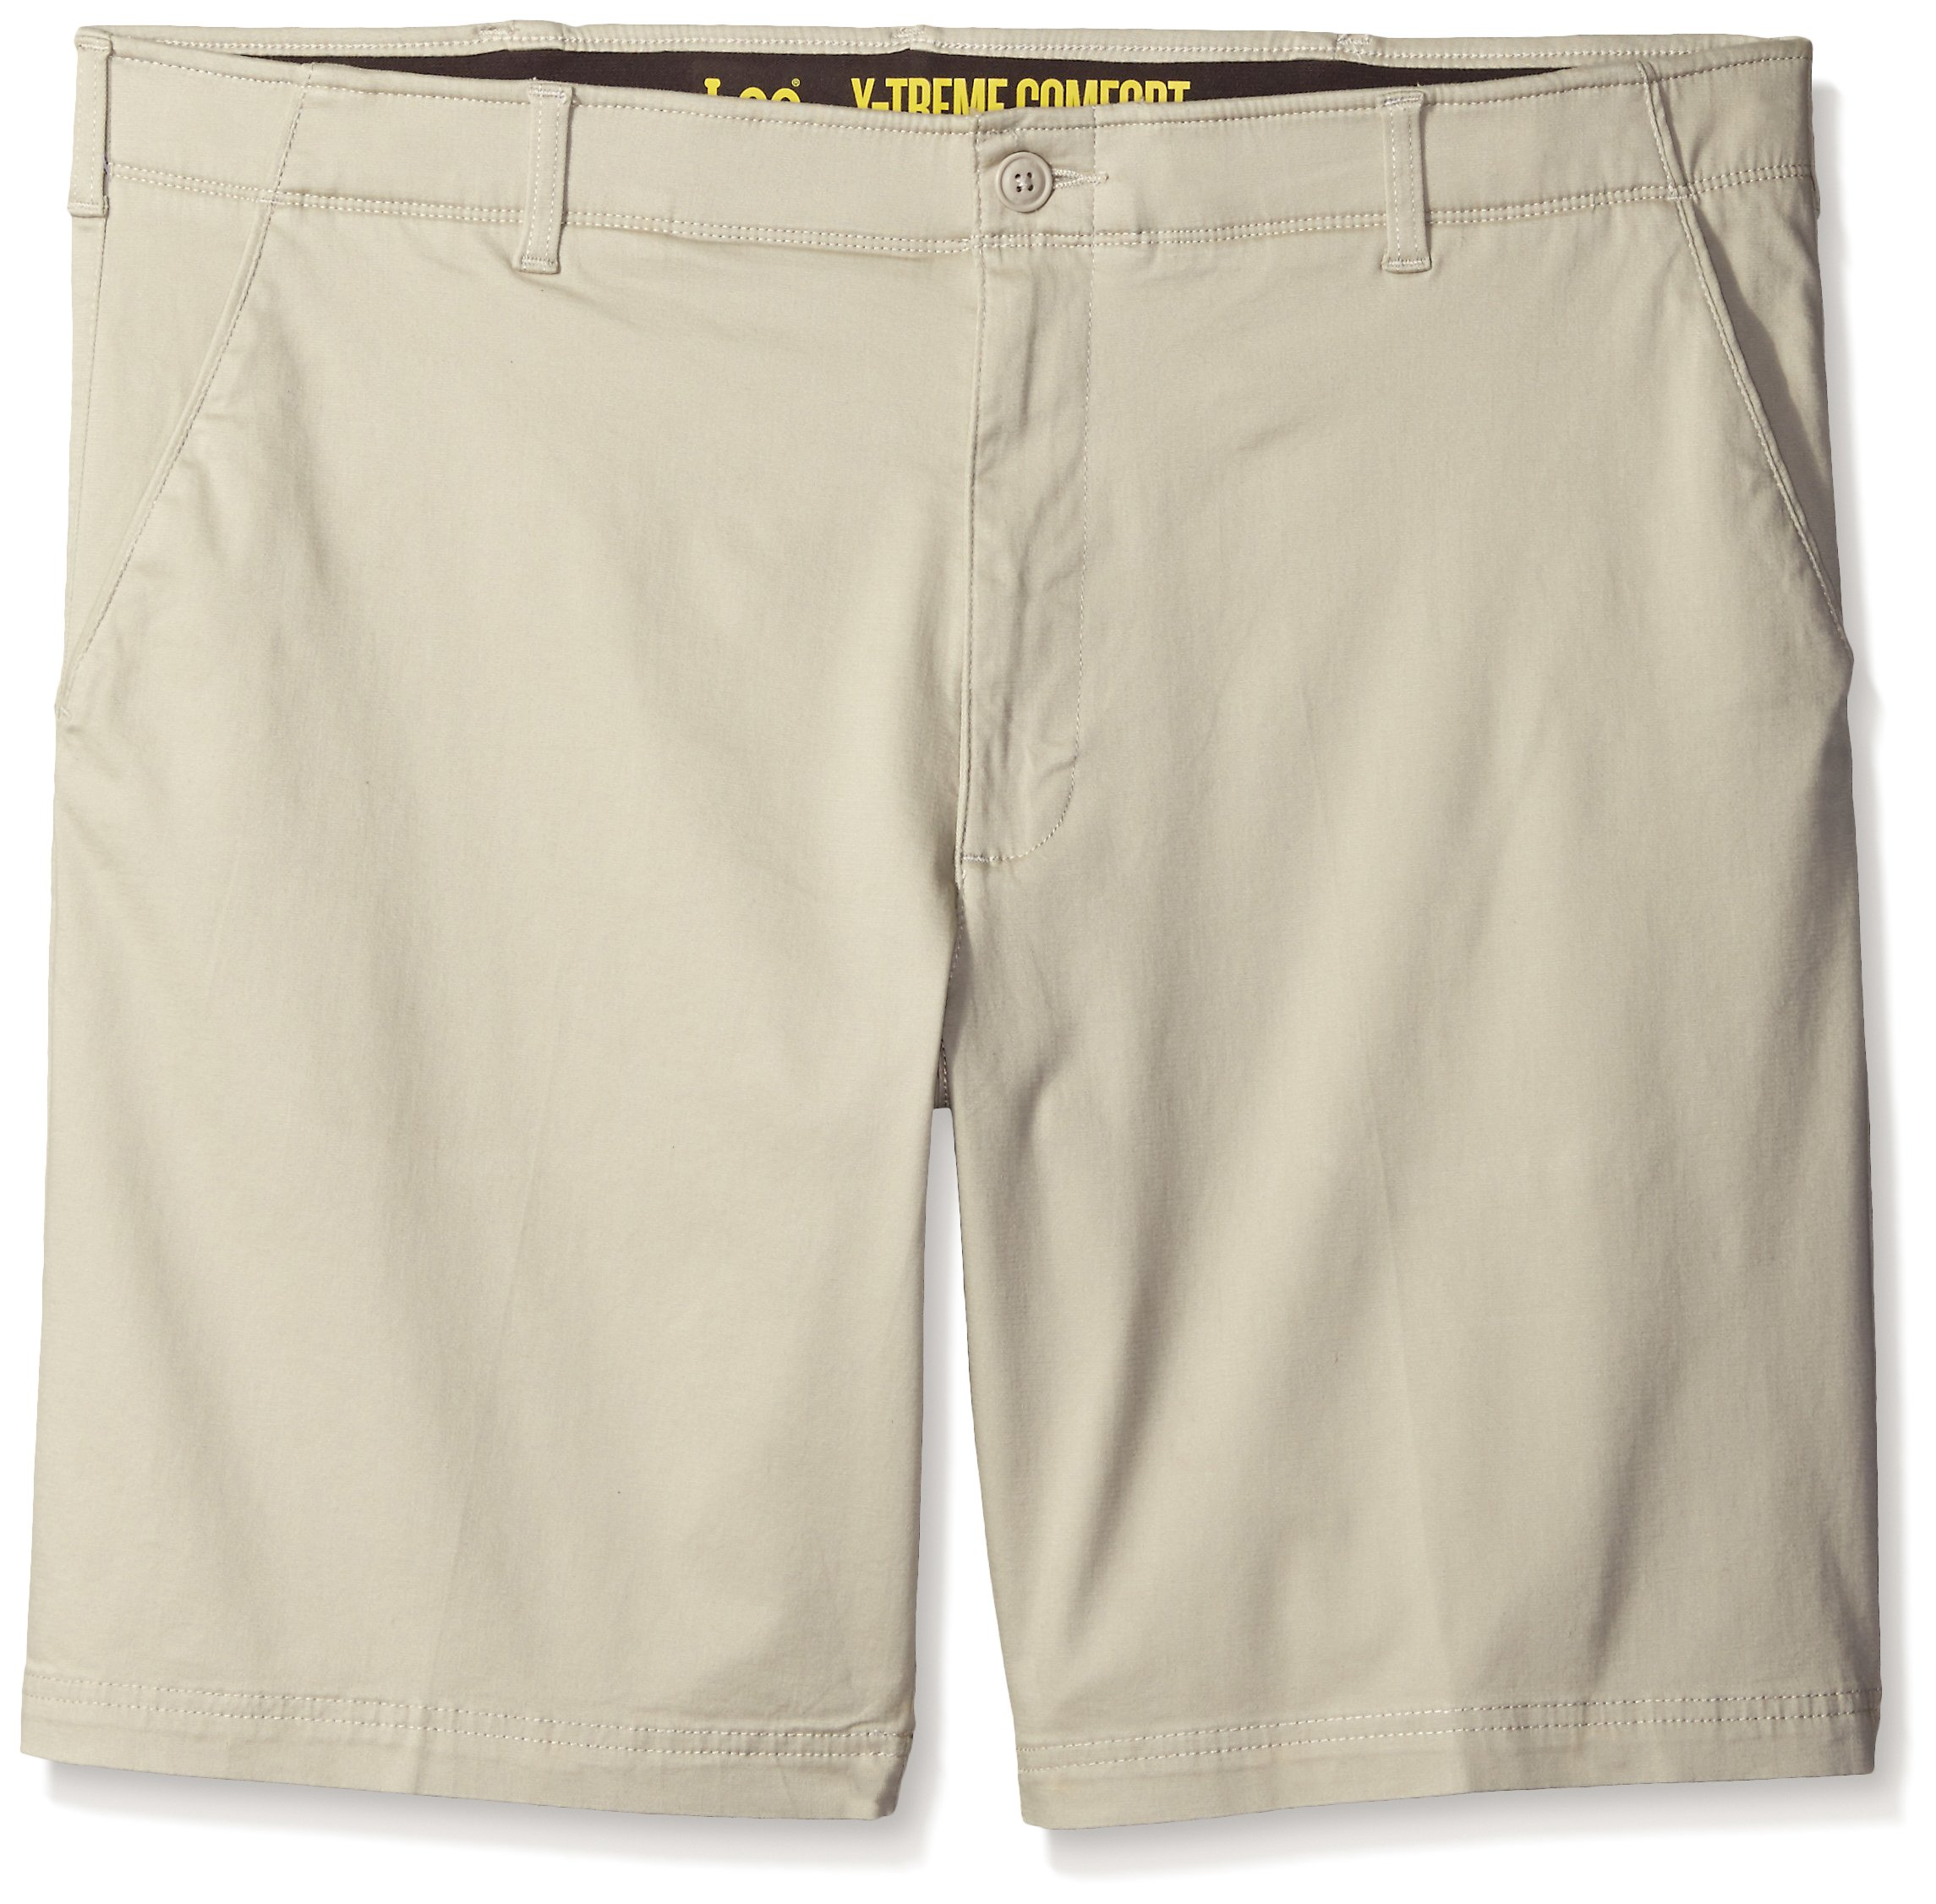 LEE Men's Big-Tall Performance Series Extreme Comfort Short, Stone, 48